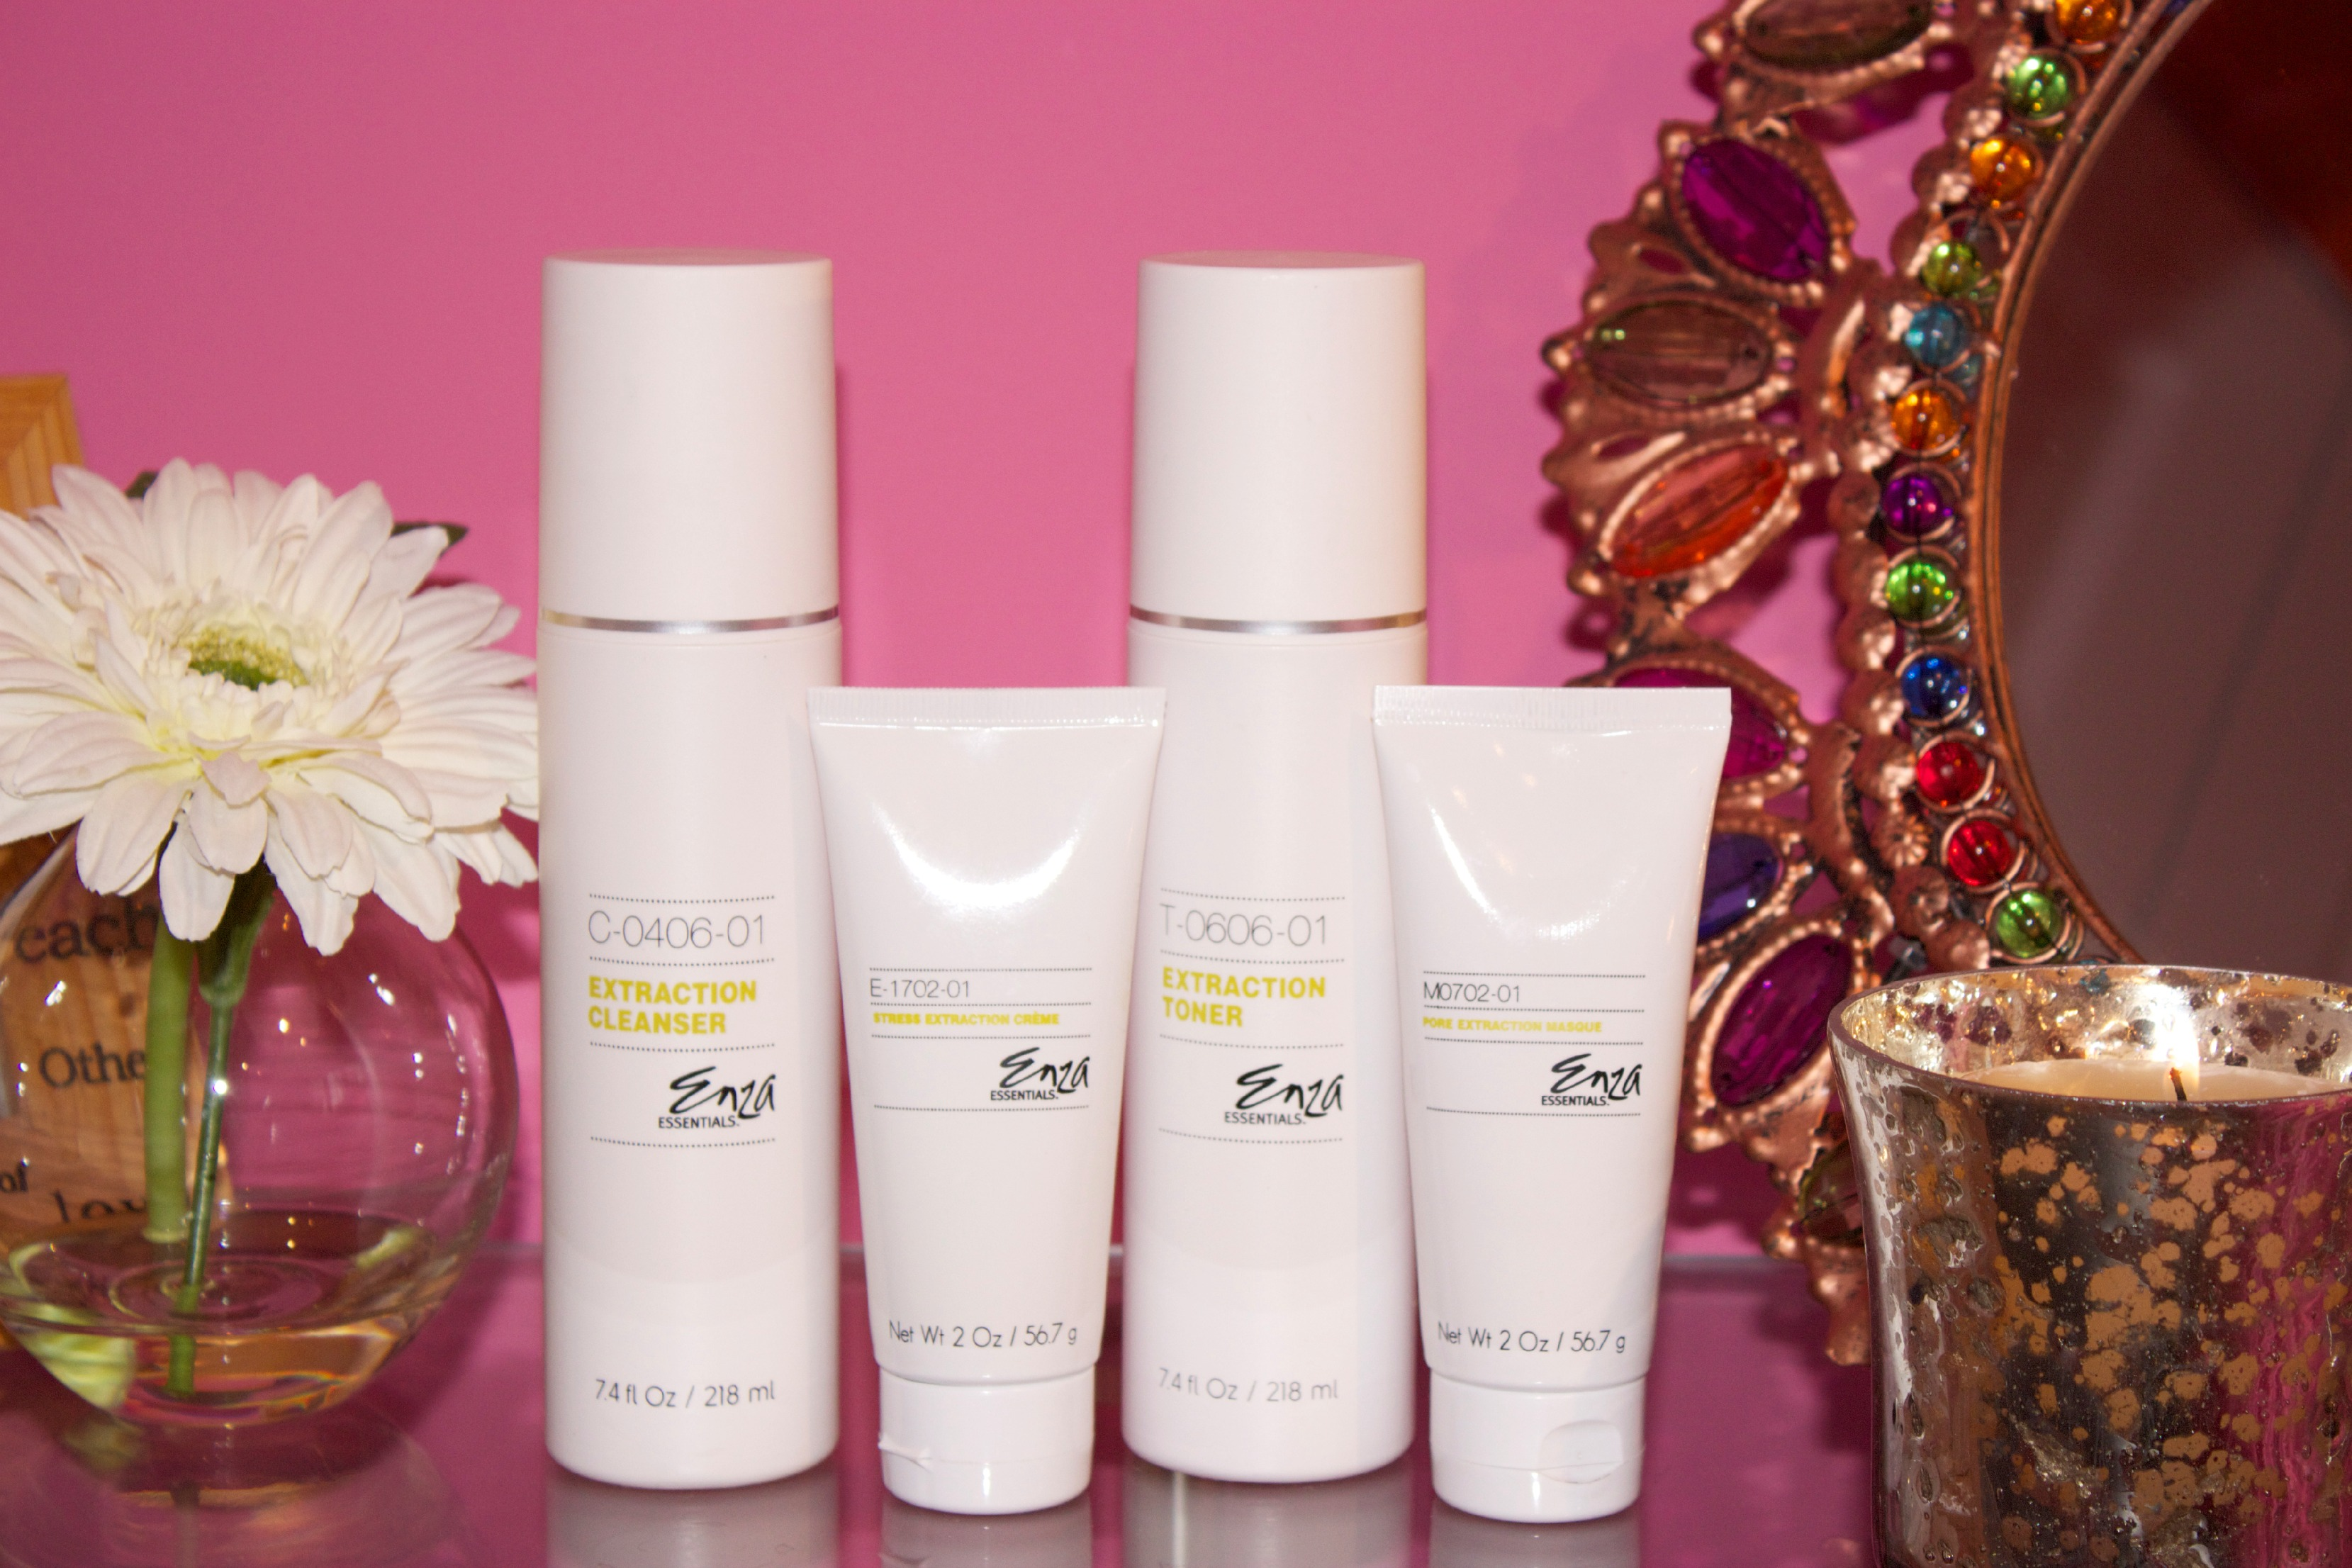 Enza Essentials Skincare Products